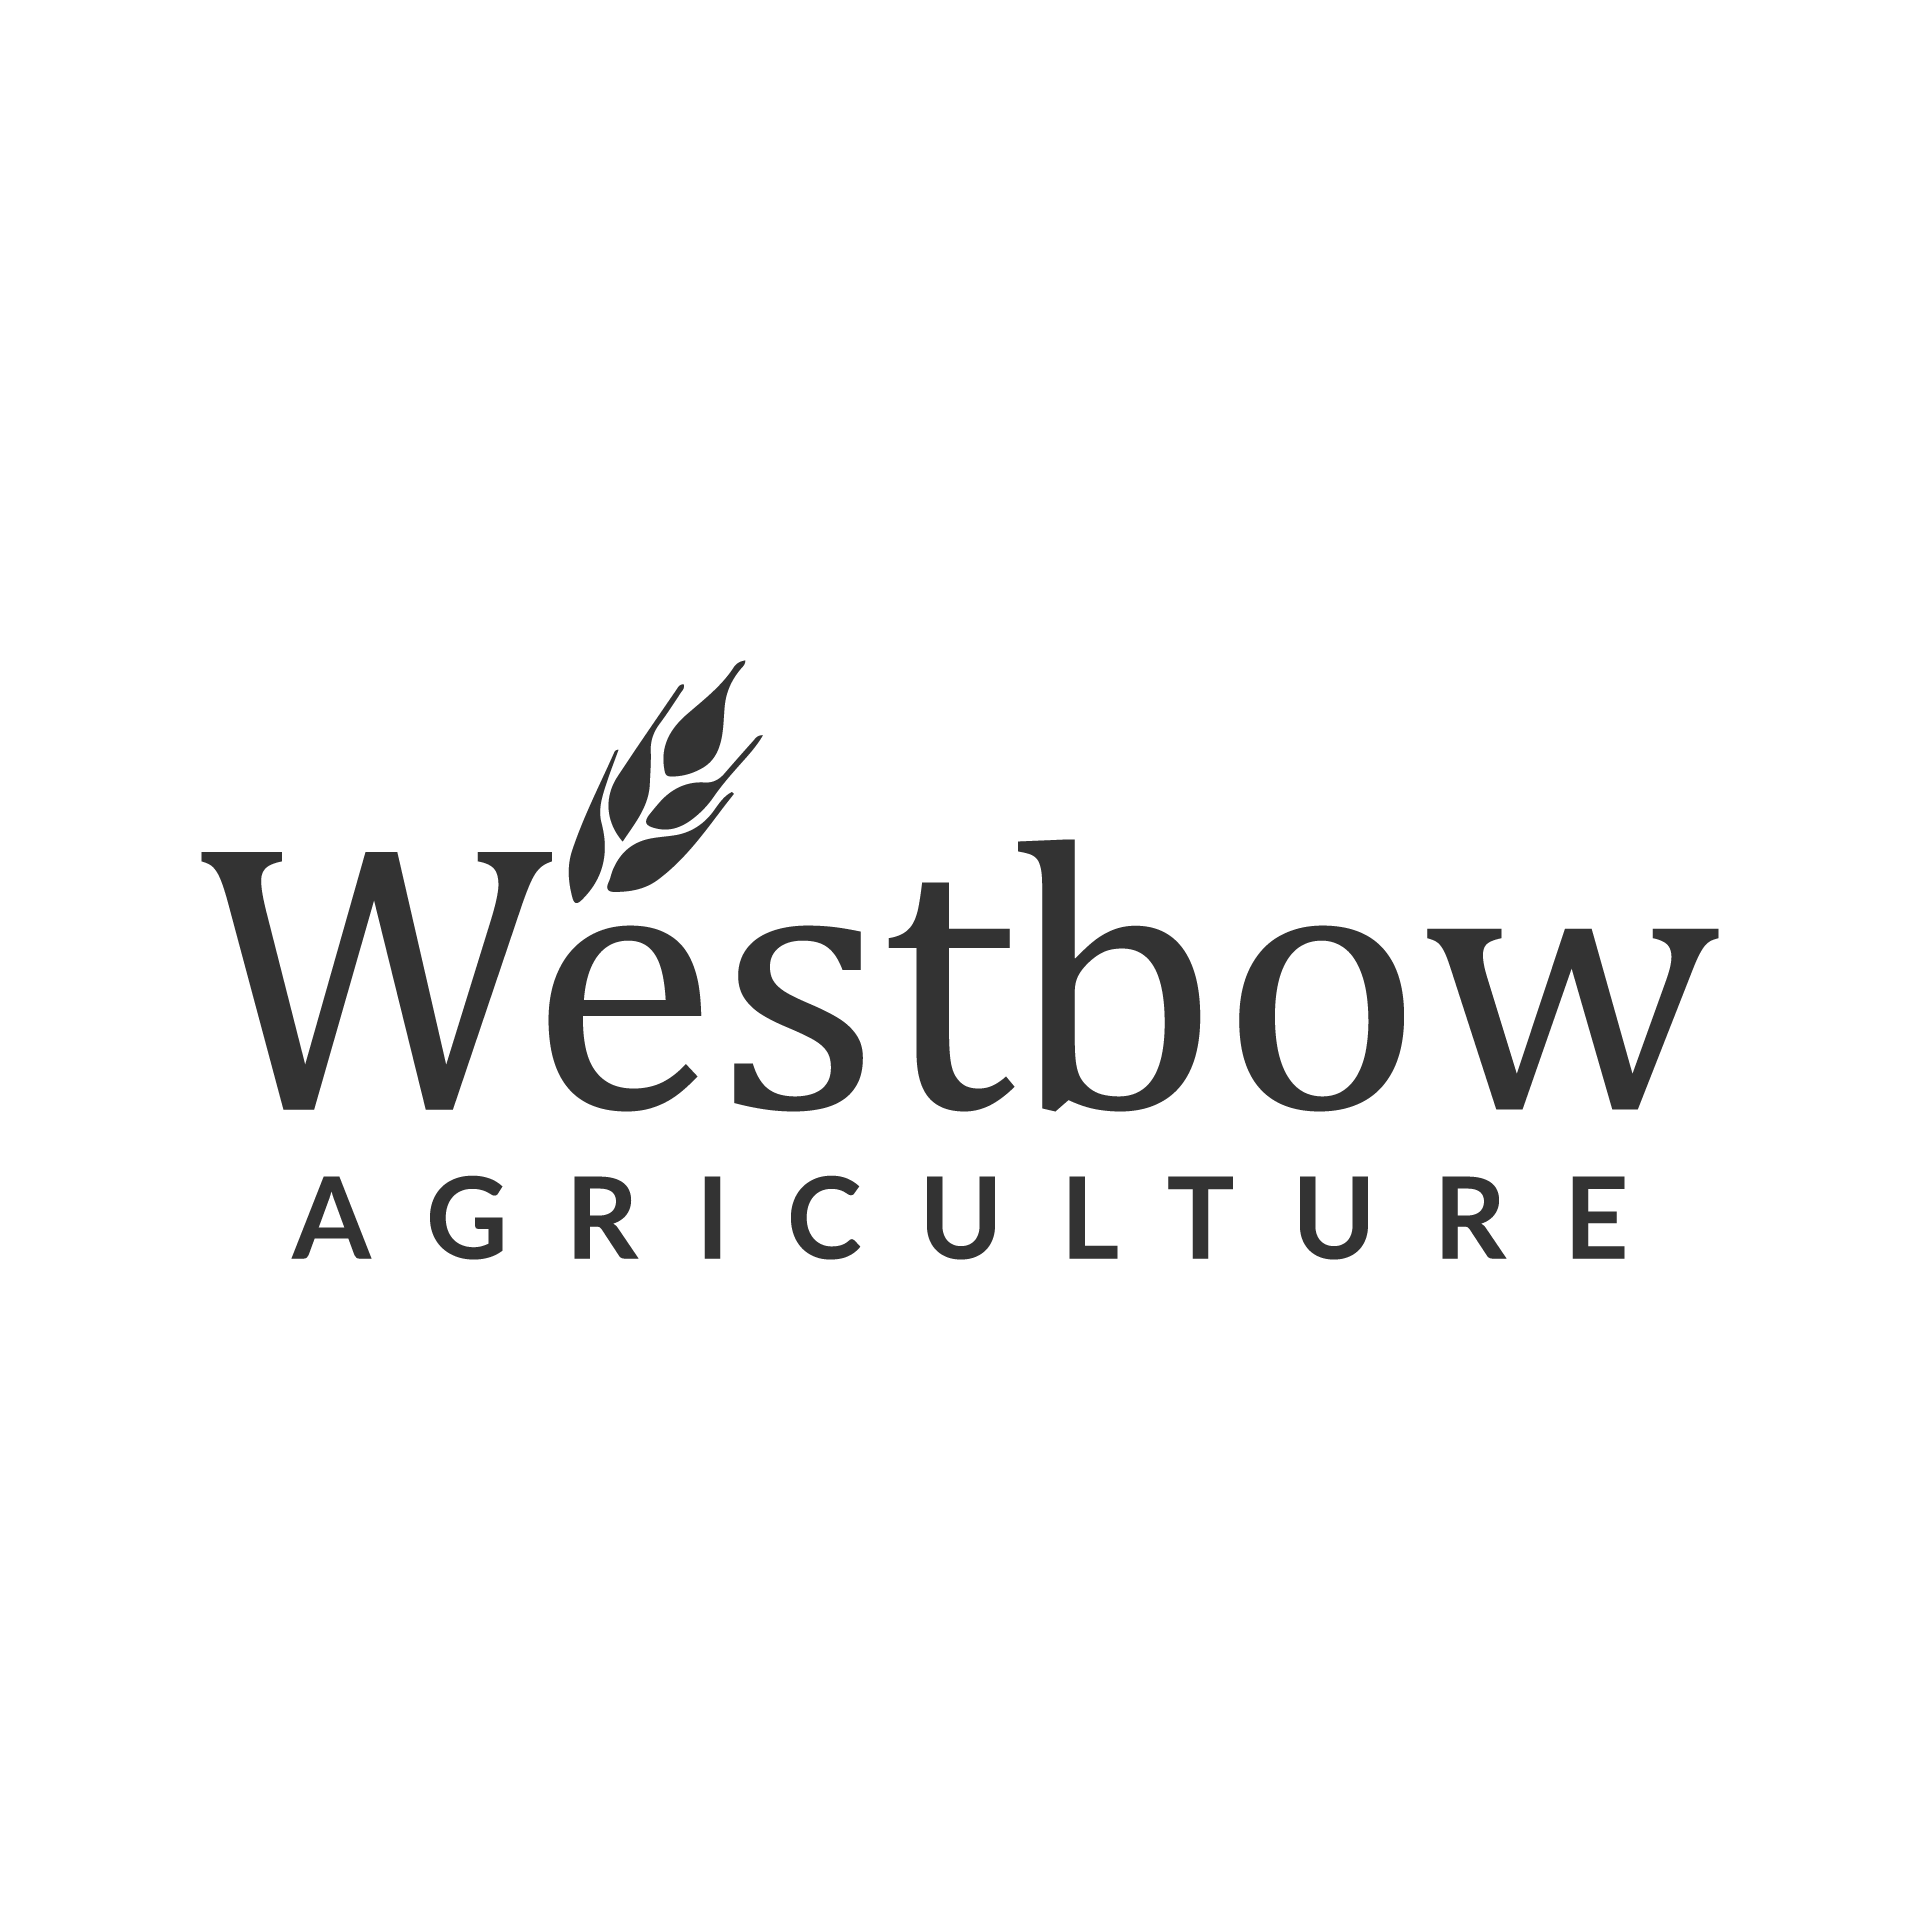 Westbow_Agriculture_logo.png